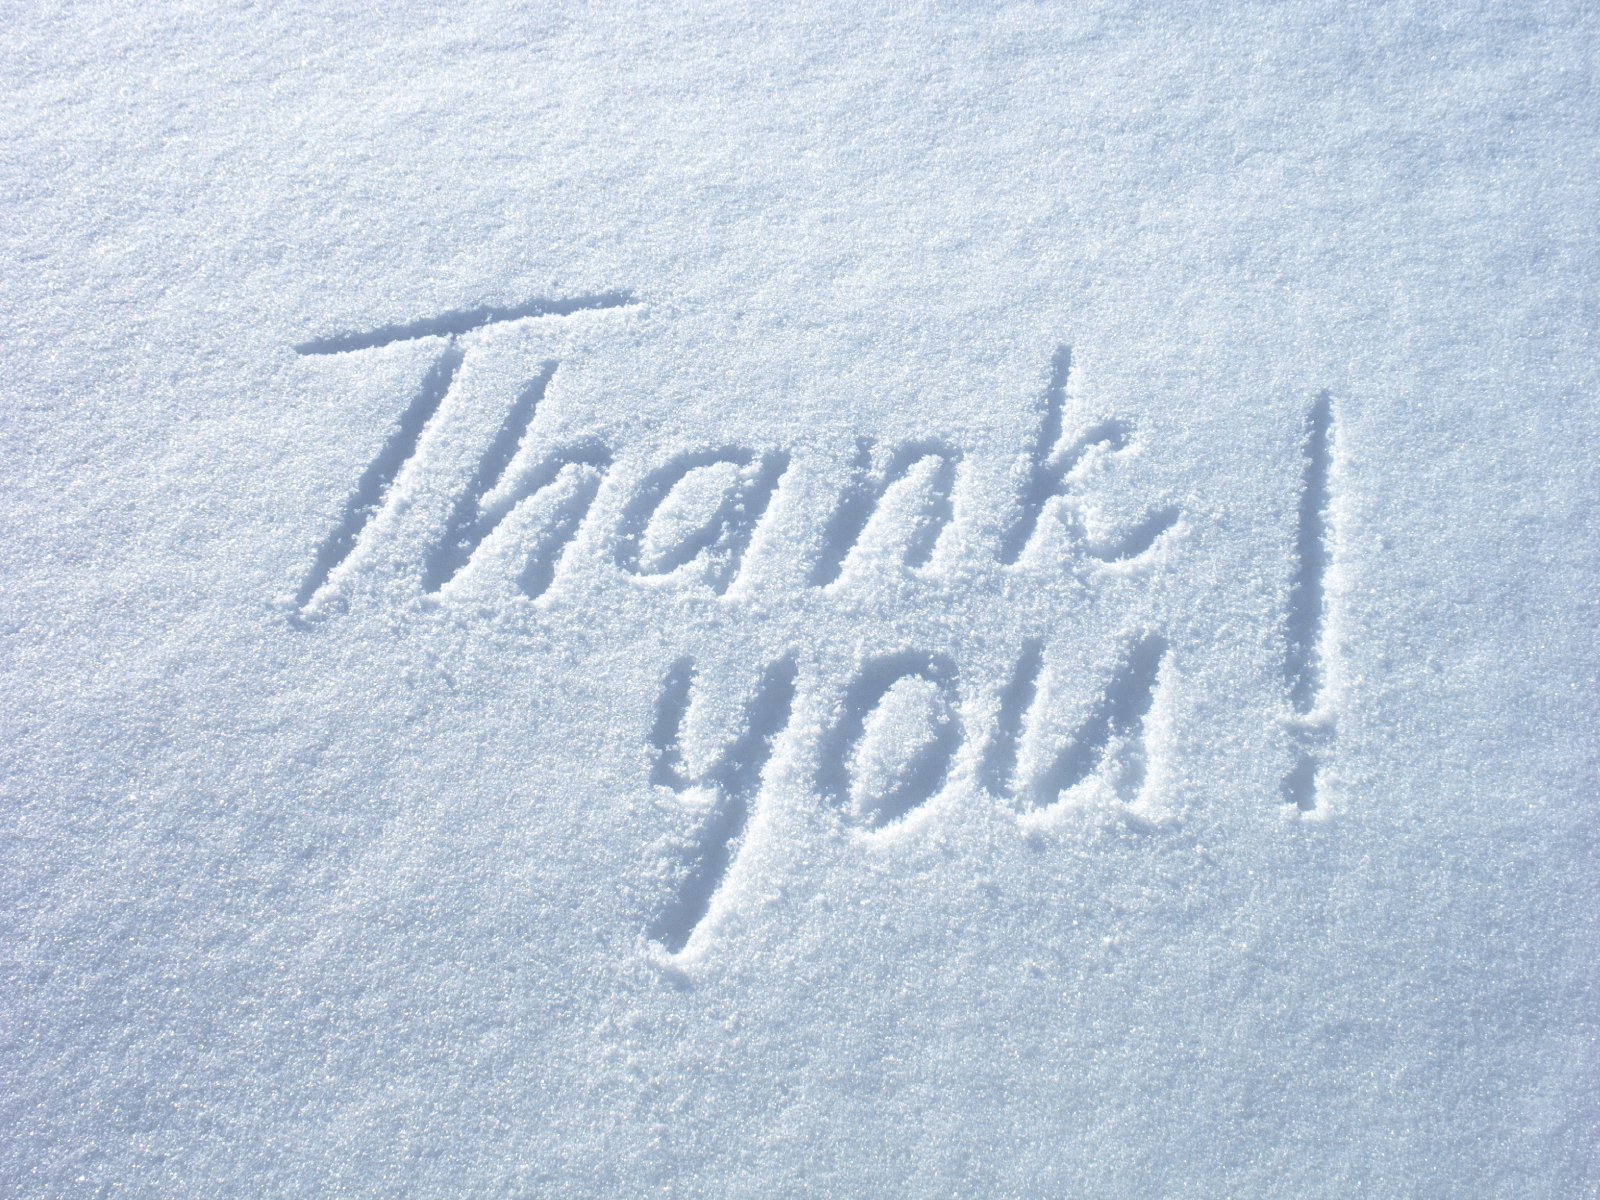 thank-you-thanks-snow-snowy-ice-icy-winter